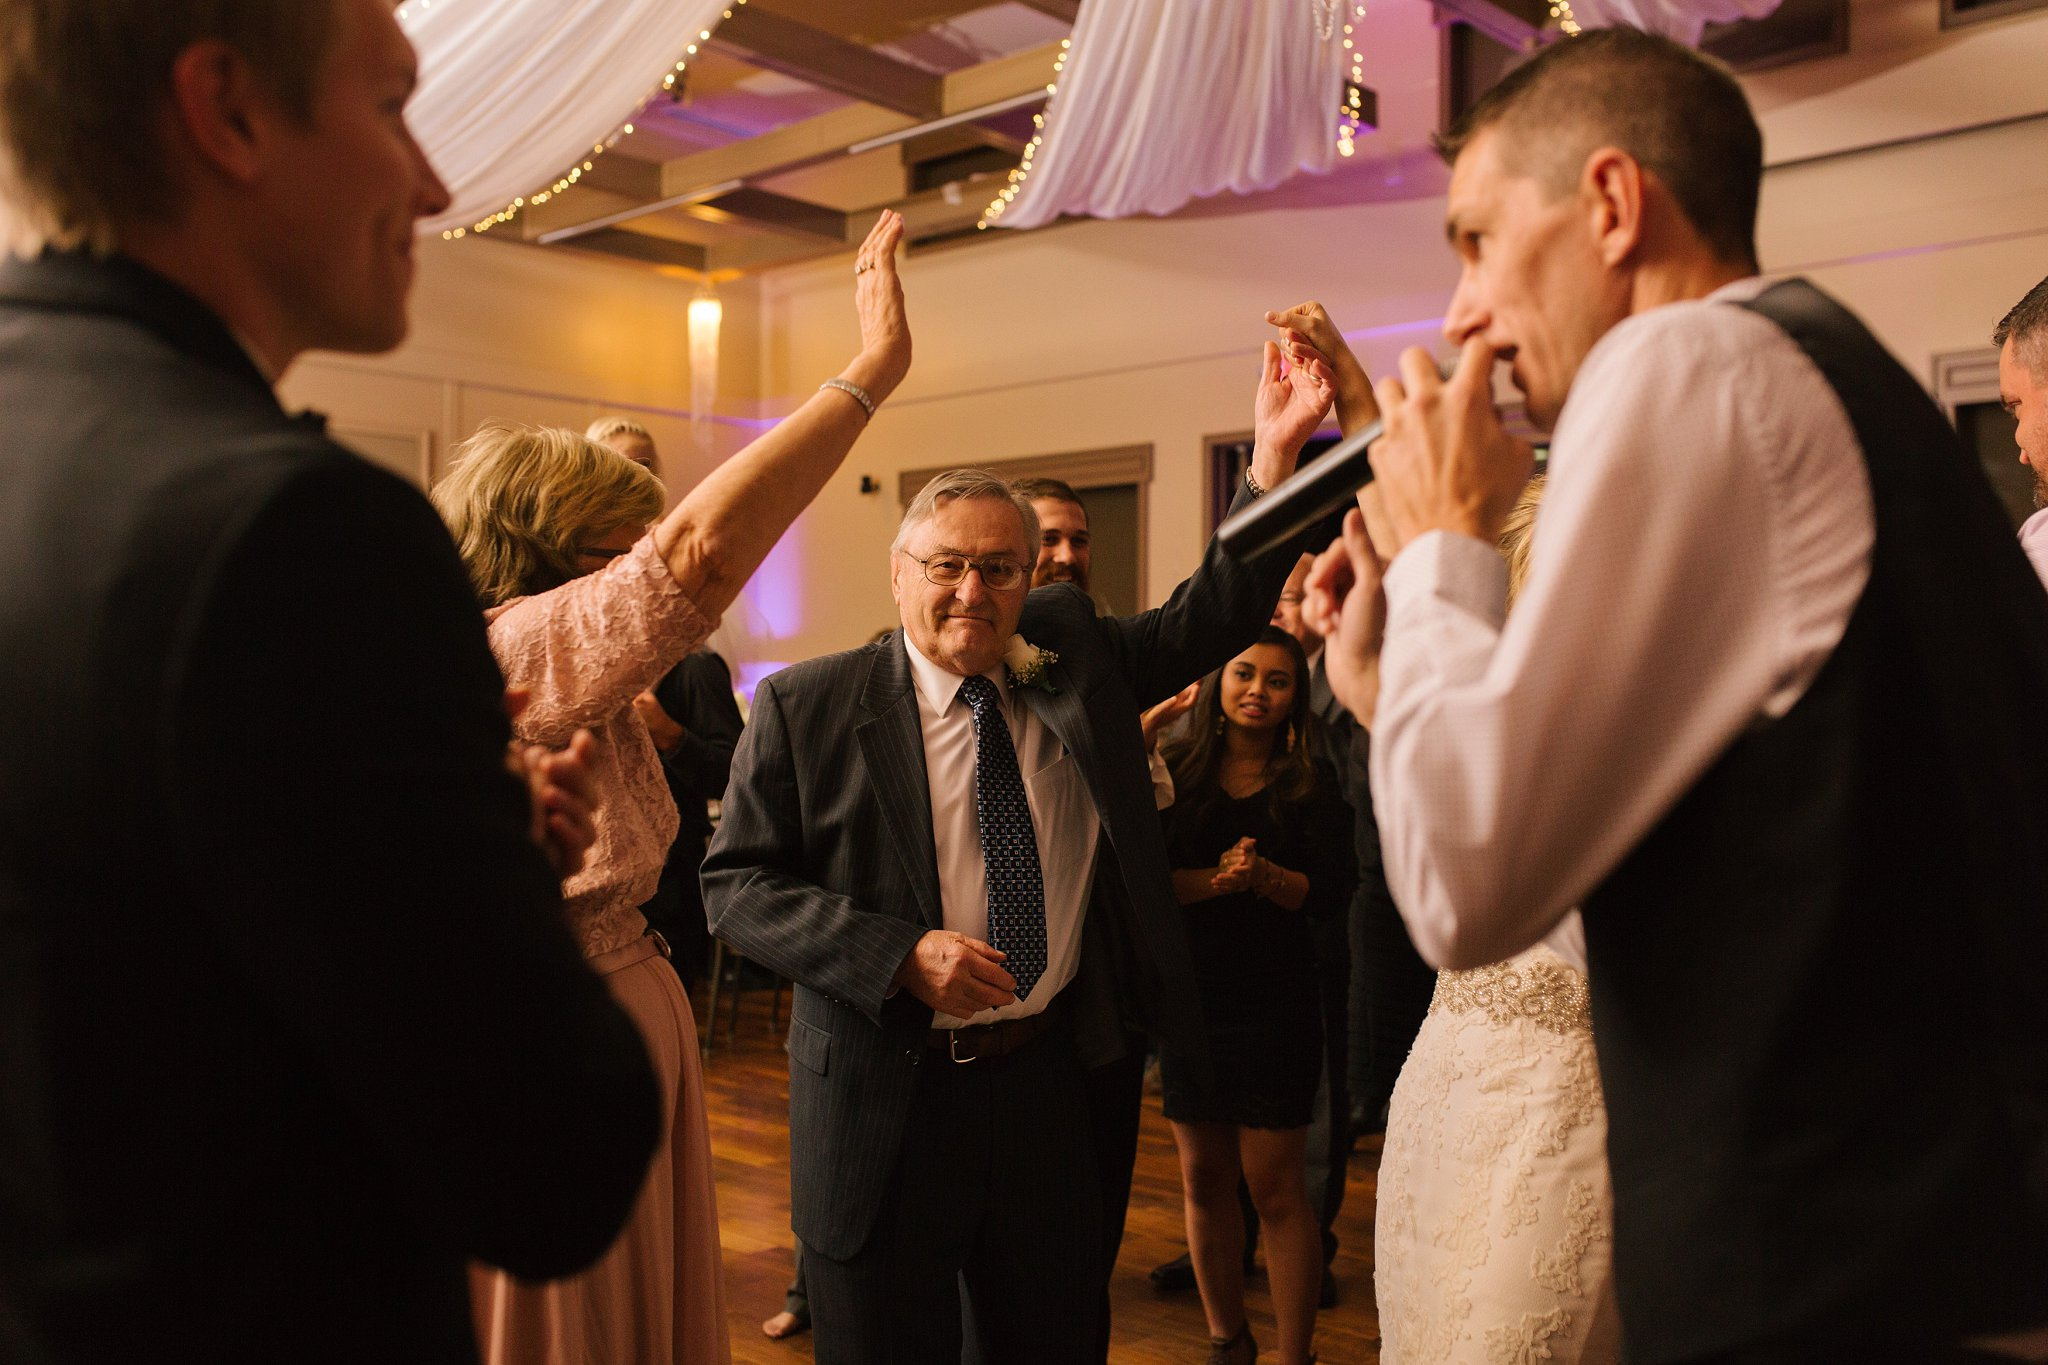 Noah's Chandler wedding reception documentary candid photographer